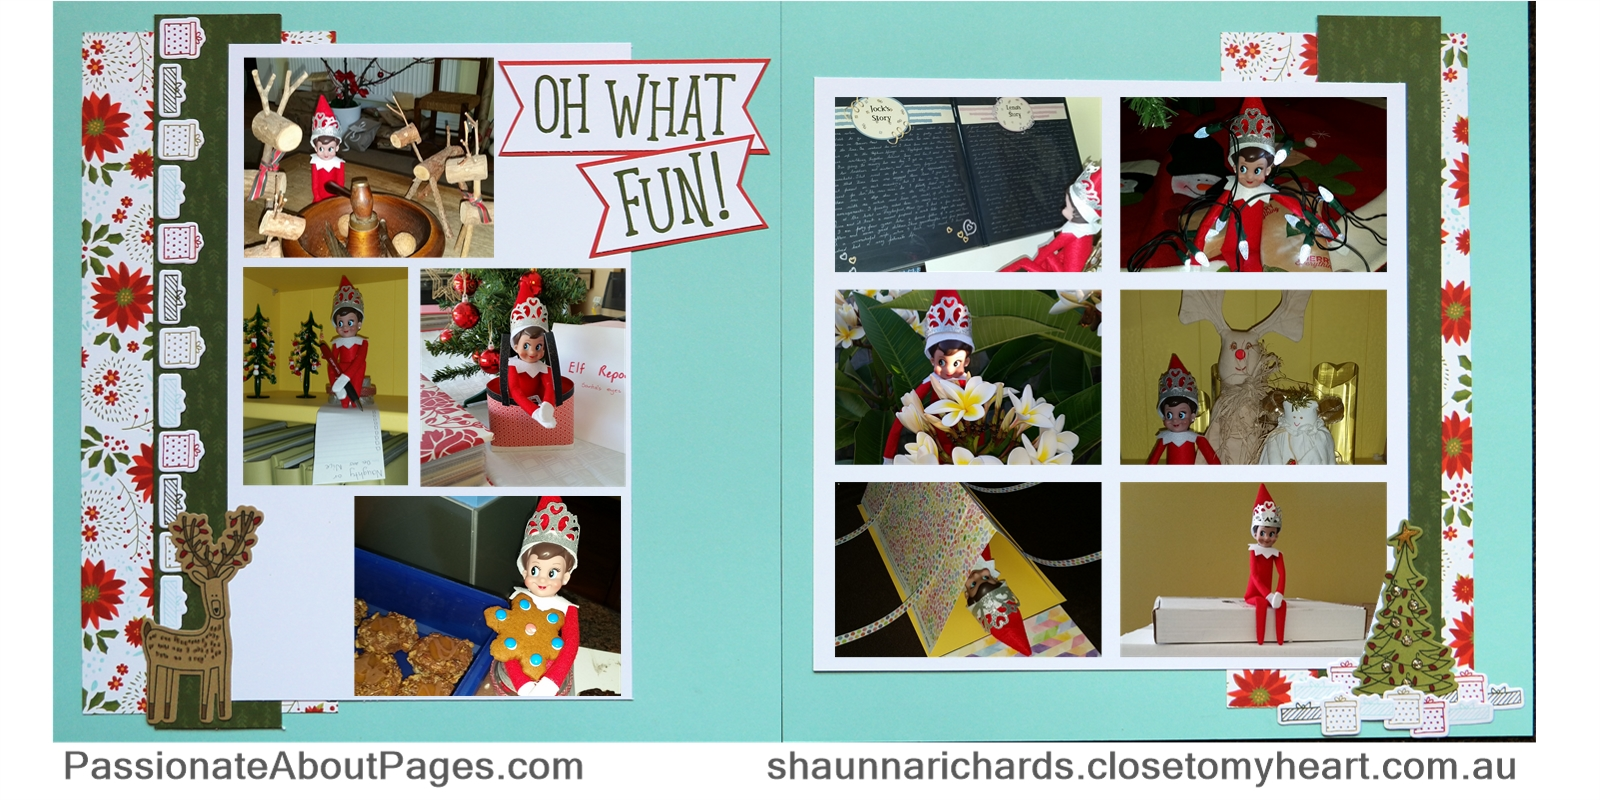 Having some Beary Christmas fun with Close To My Heart papers, stamps and dies. Order yours at www.shaunnarichards.ctmh.com.au before Dec 31, 2017